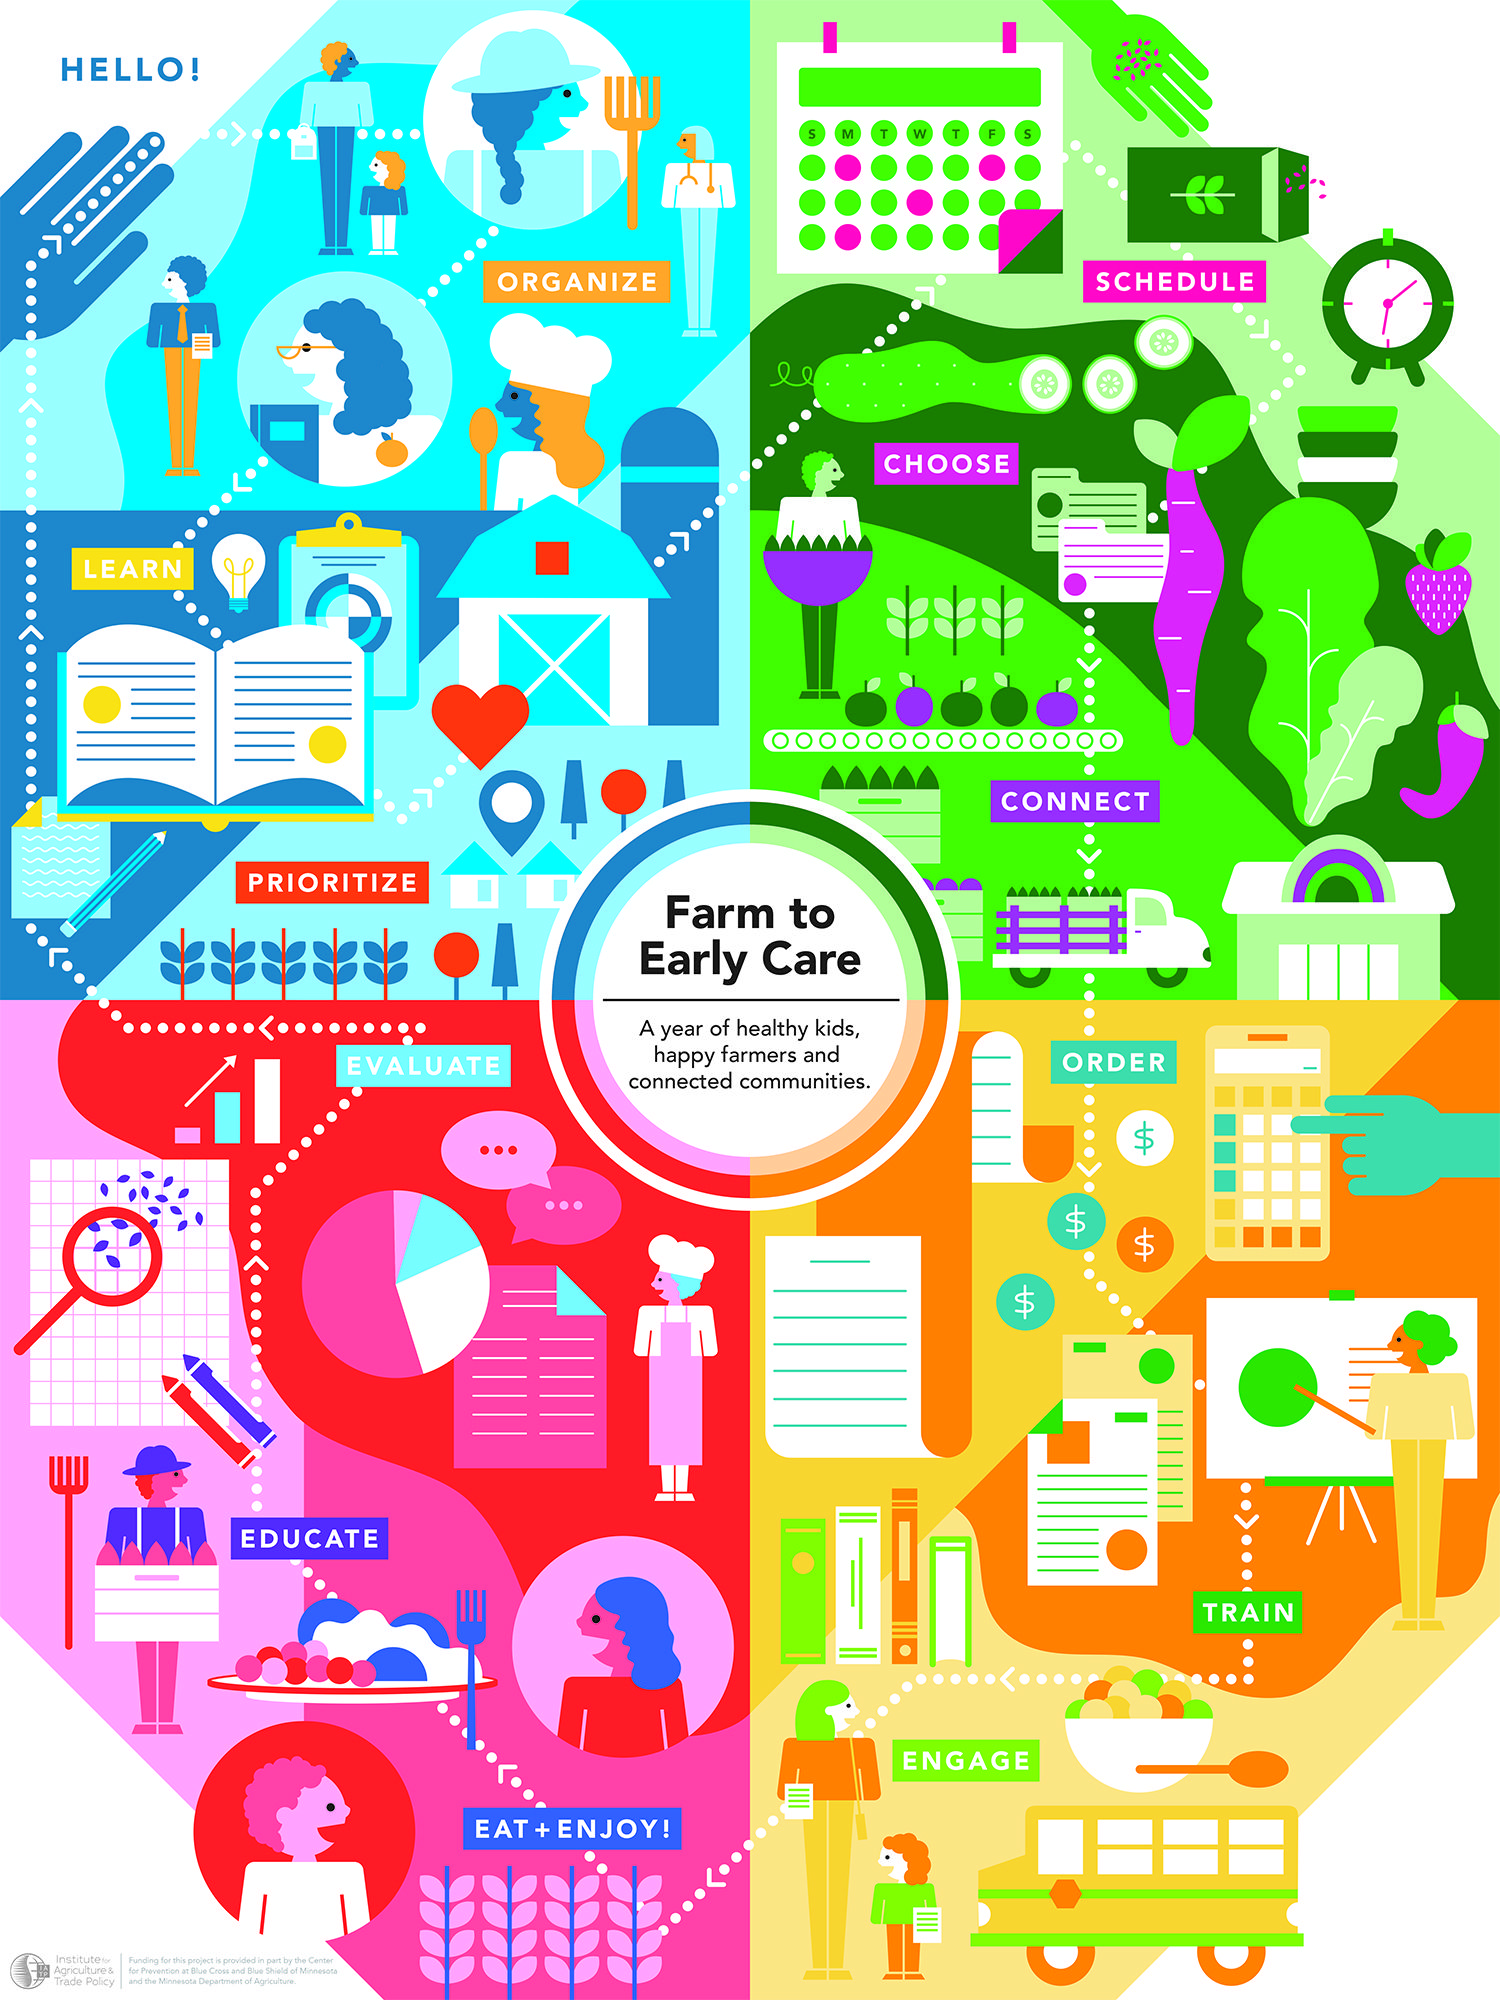 13 Education Infographic Examples & Templates - Daily Design ...